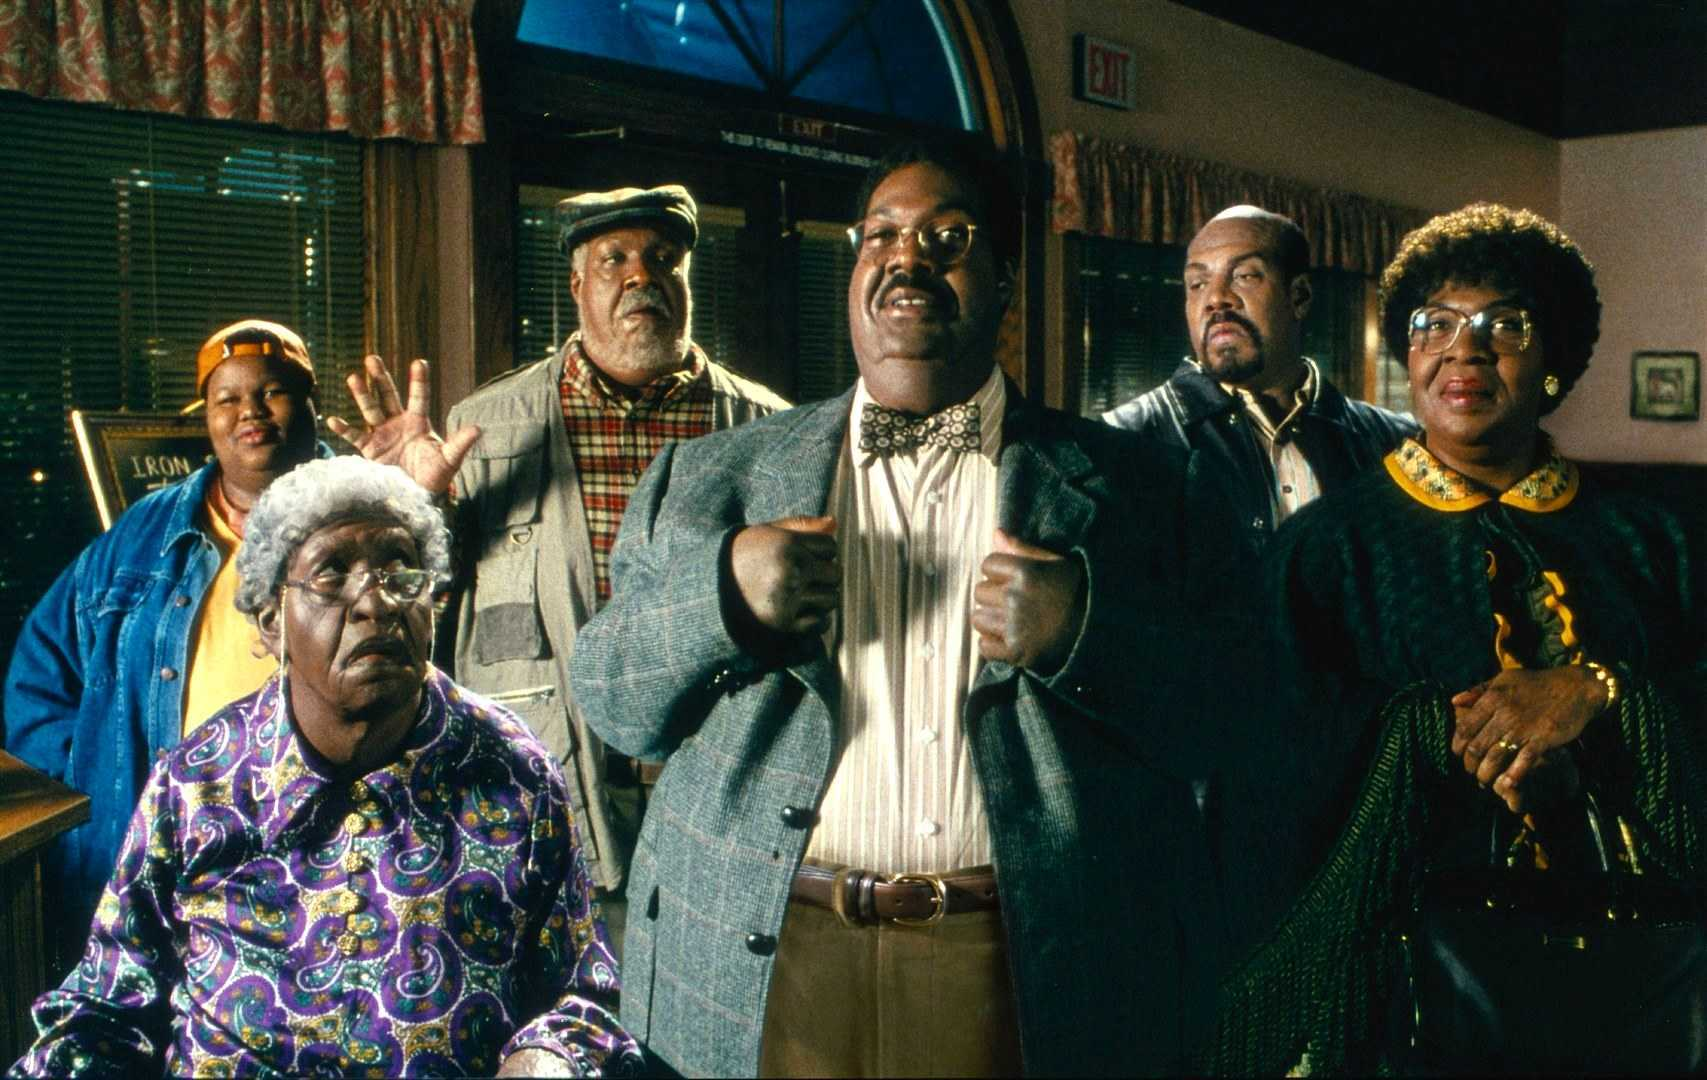 Eddie Murphy as Sherman Klump and all the members of his family in The Nutty Professor II: The Klumps (2000)